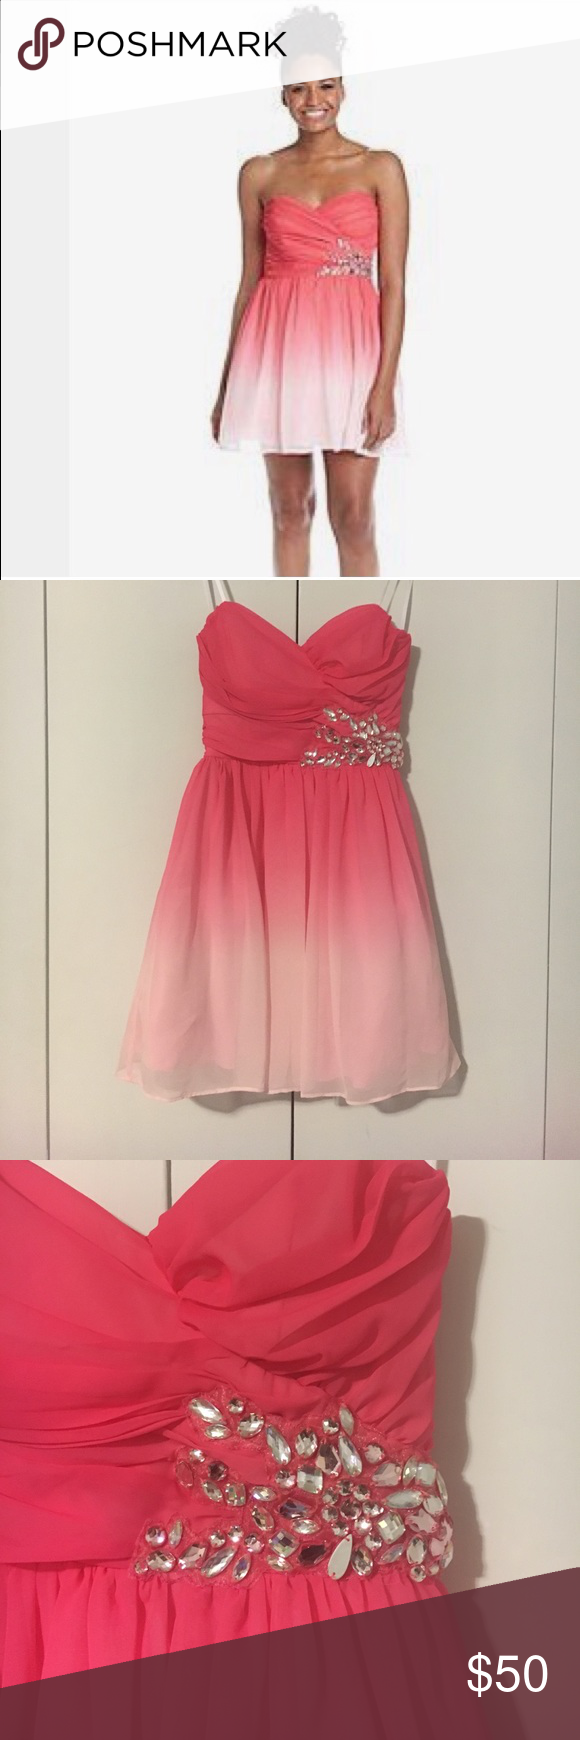 B Darlin Pink Ombré Party Dress | Neckline, Customer support and ...